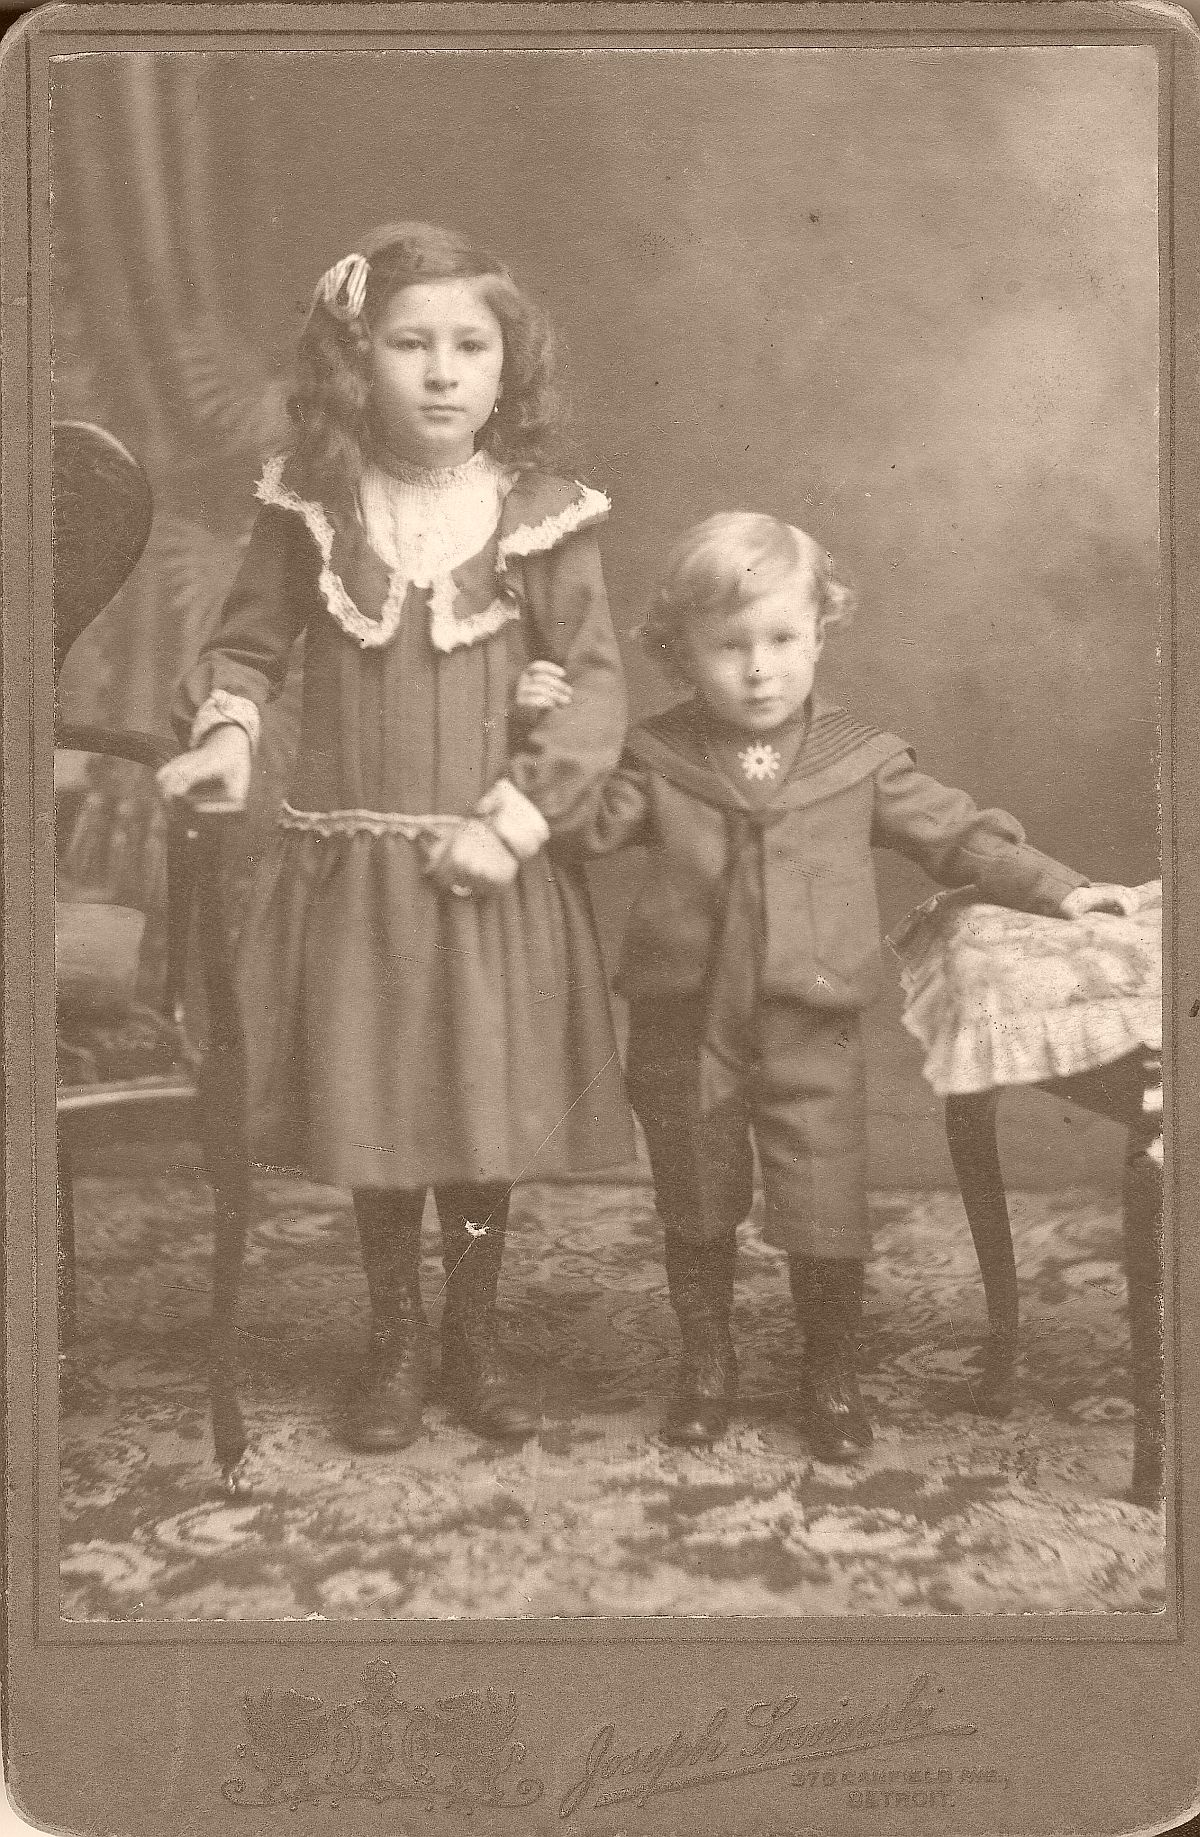 cabinet-cards-1870s-to-1880s-vintage-19th-century-victorian-era-21